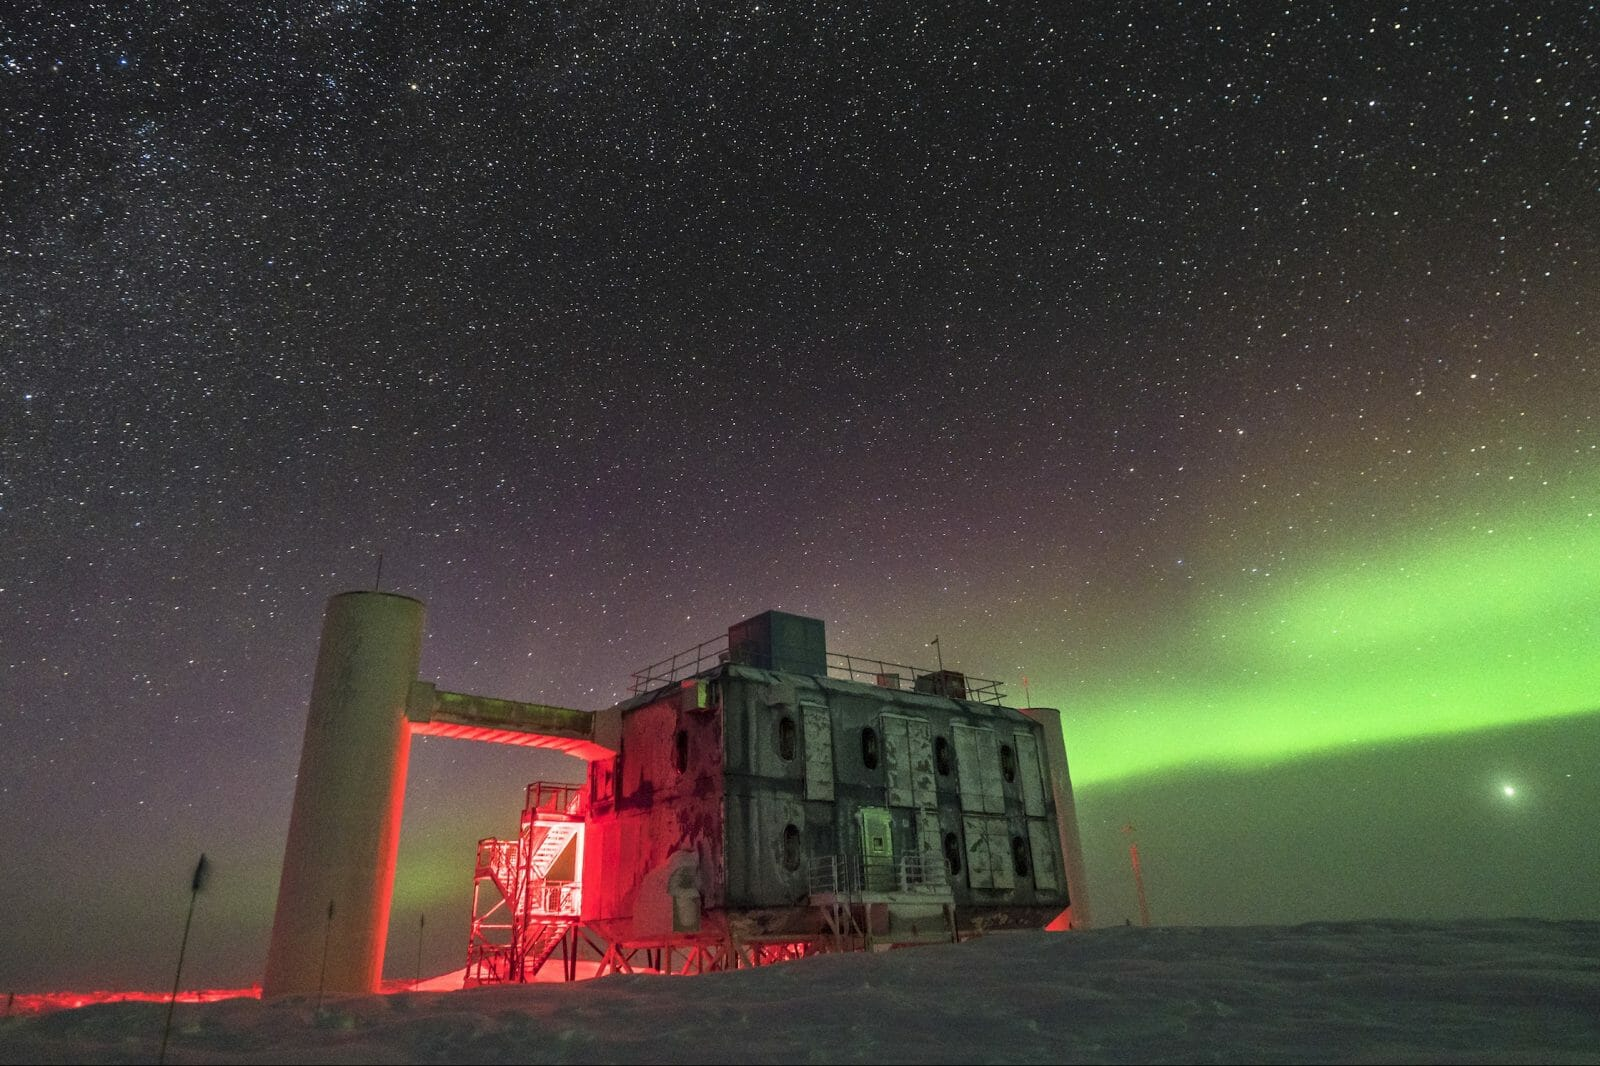 IceCube lab at the South Pole